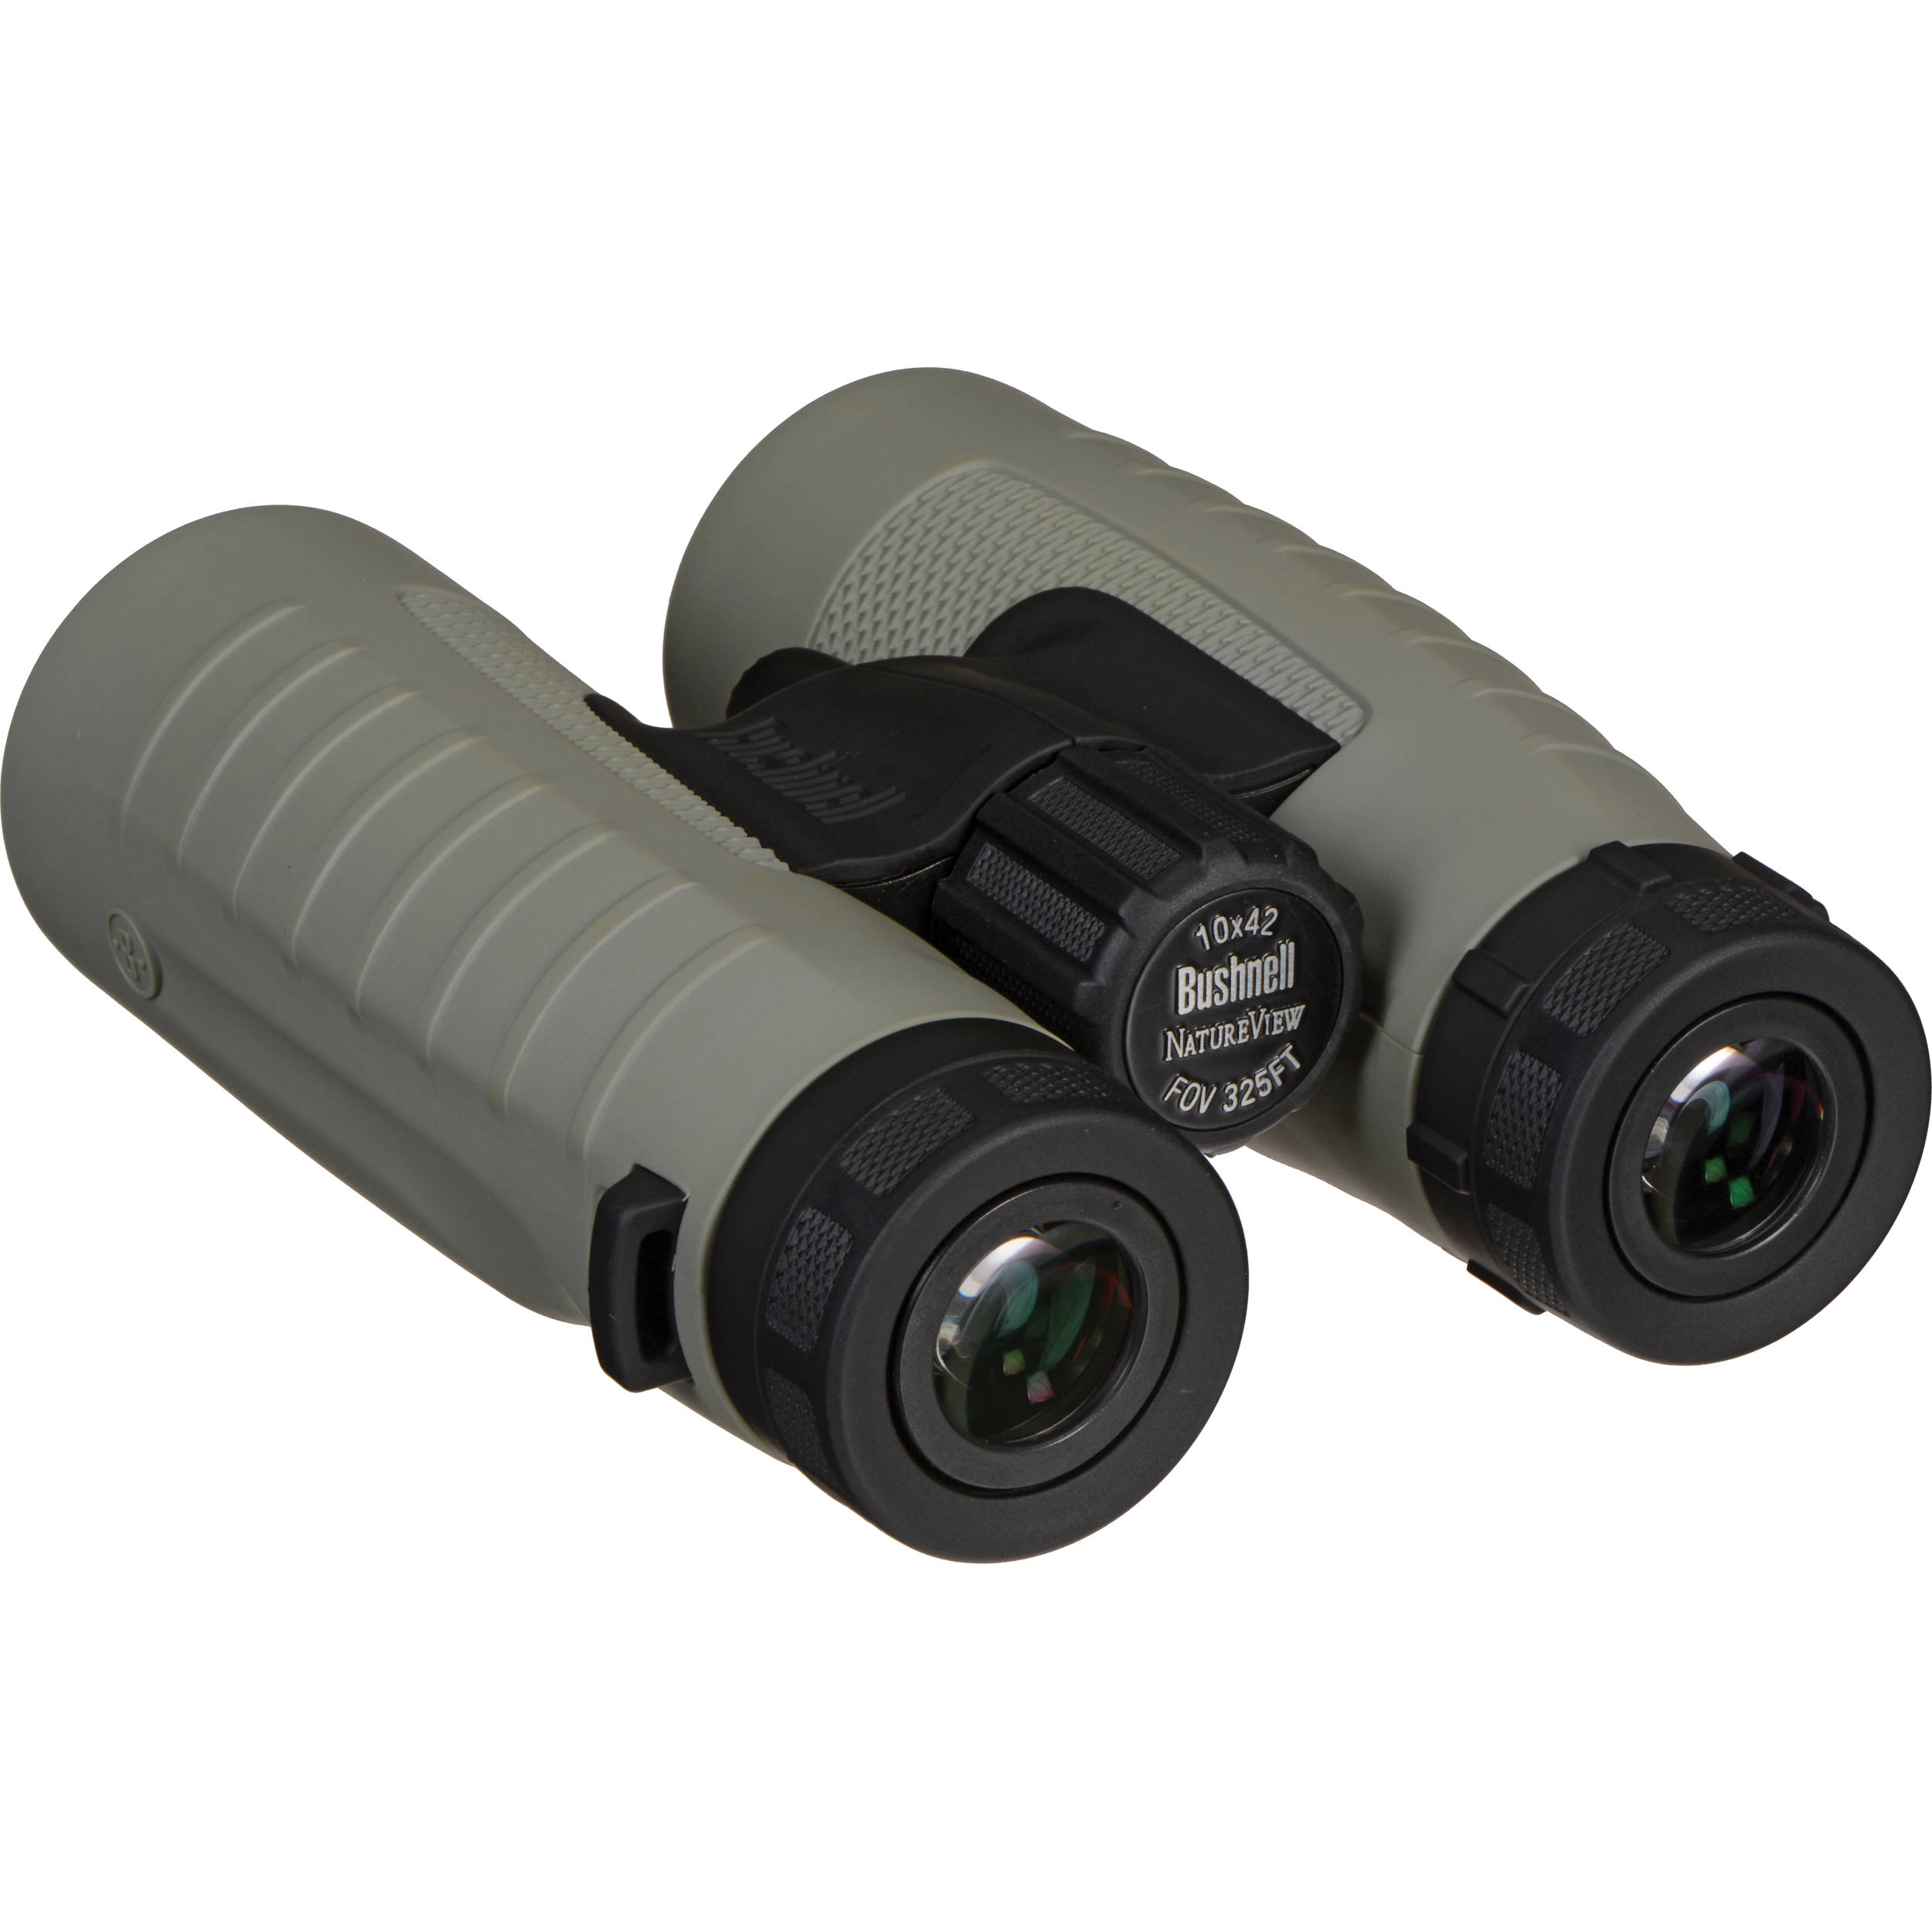 Natureview Bushnell Bushnell 10x42 Binocular 10x42 Natureview Roof E29YDIeWH